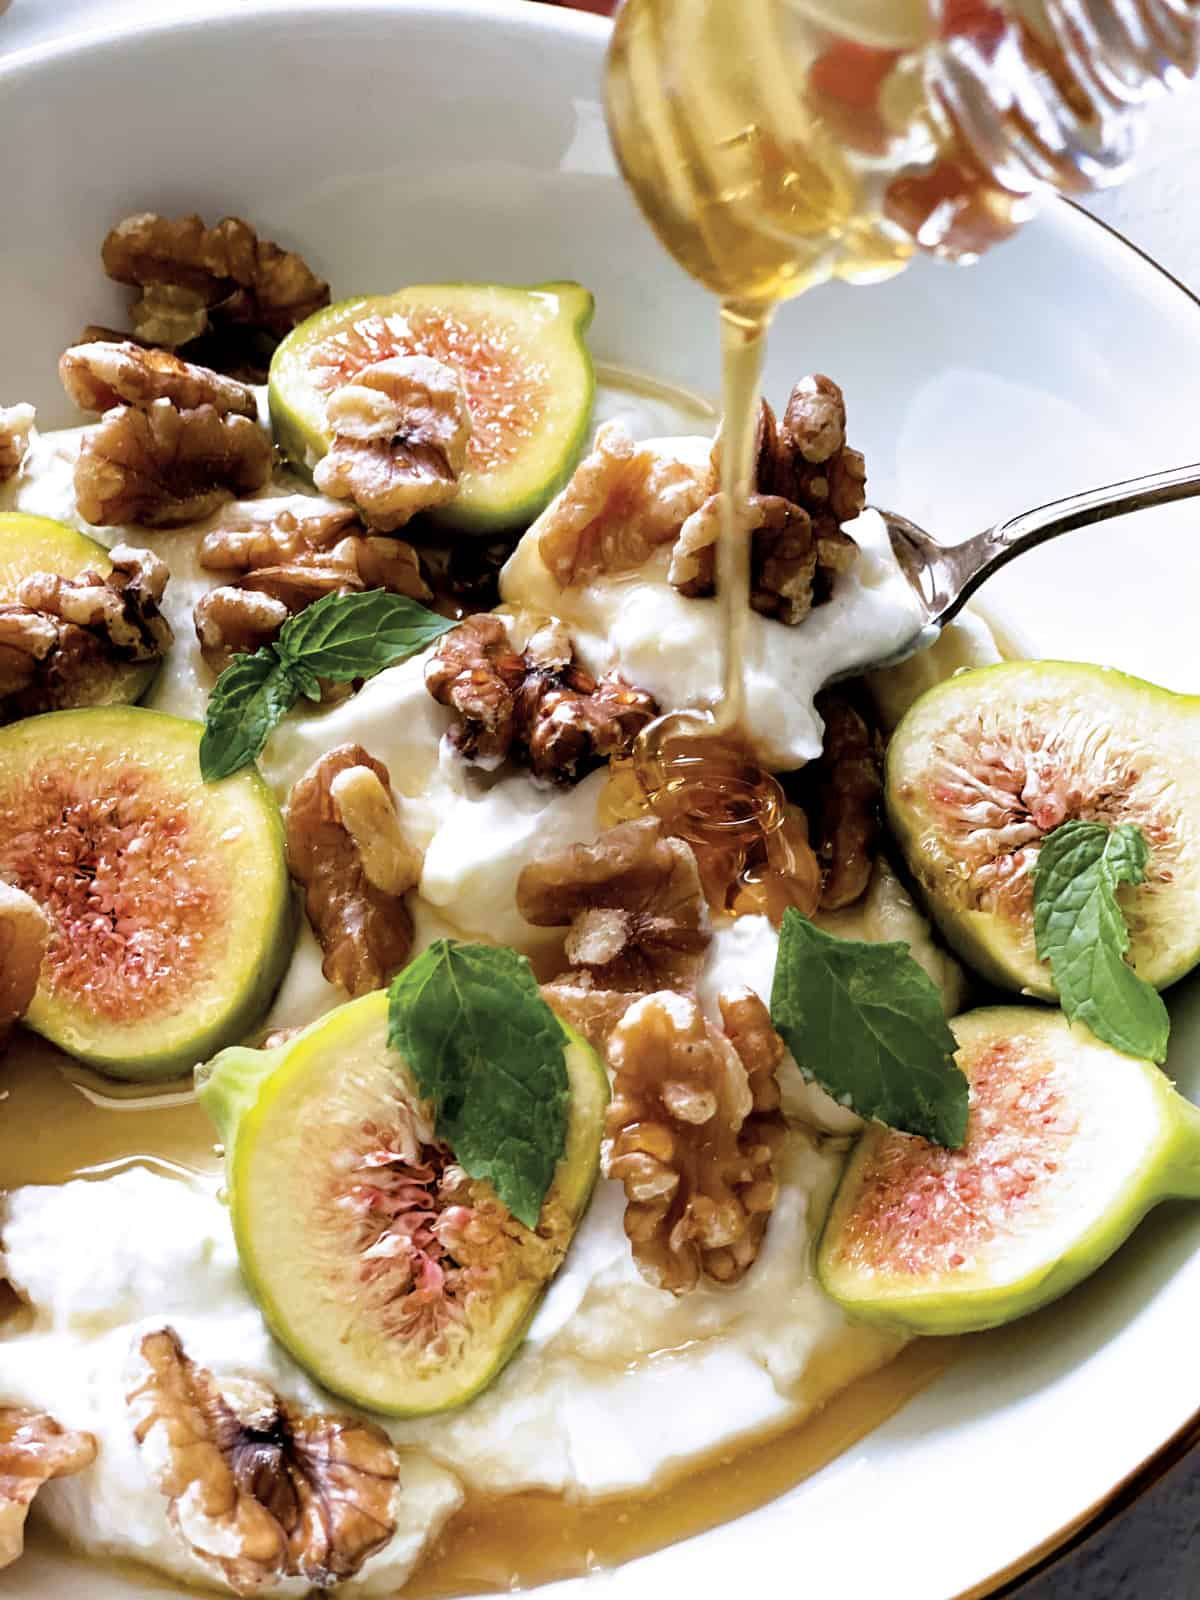 Close up of yogurt, figs and walnuts and a honey dipper drizzling honey.